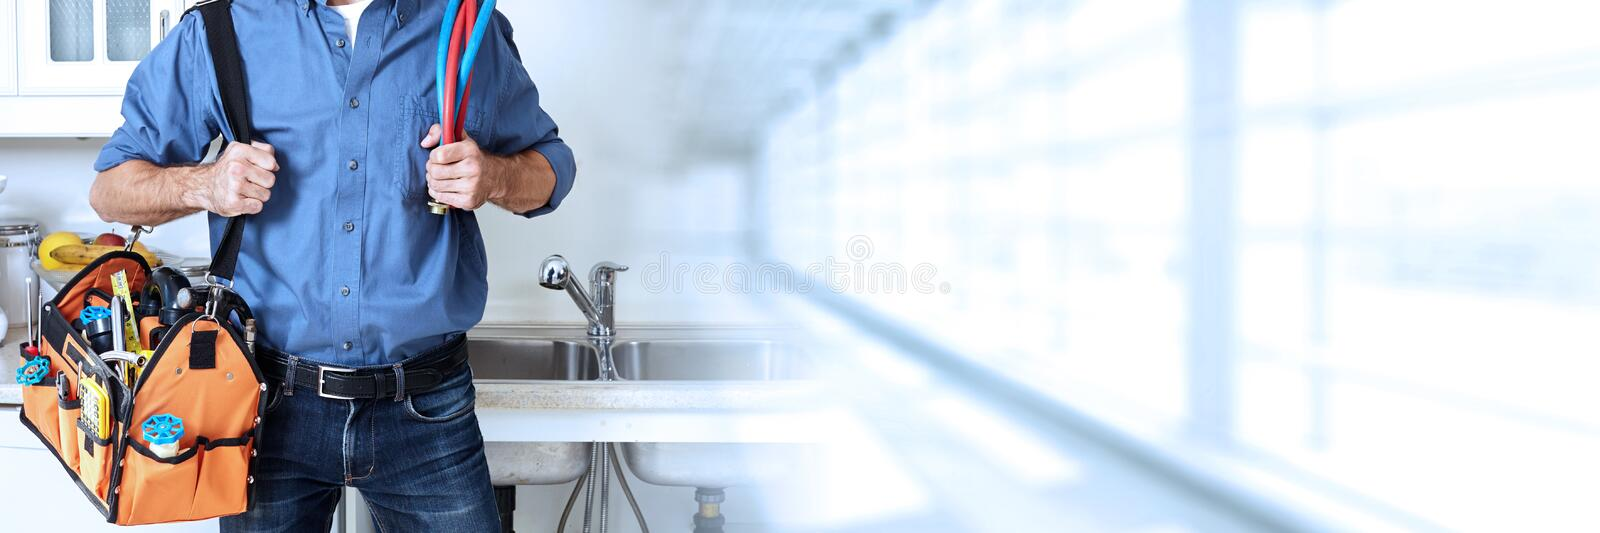 Plumber. Professional plumber working renovation in kitchen home stock photo